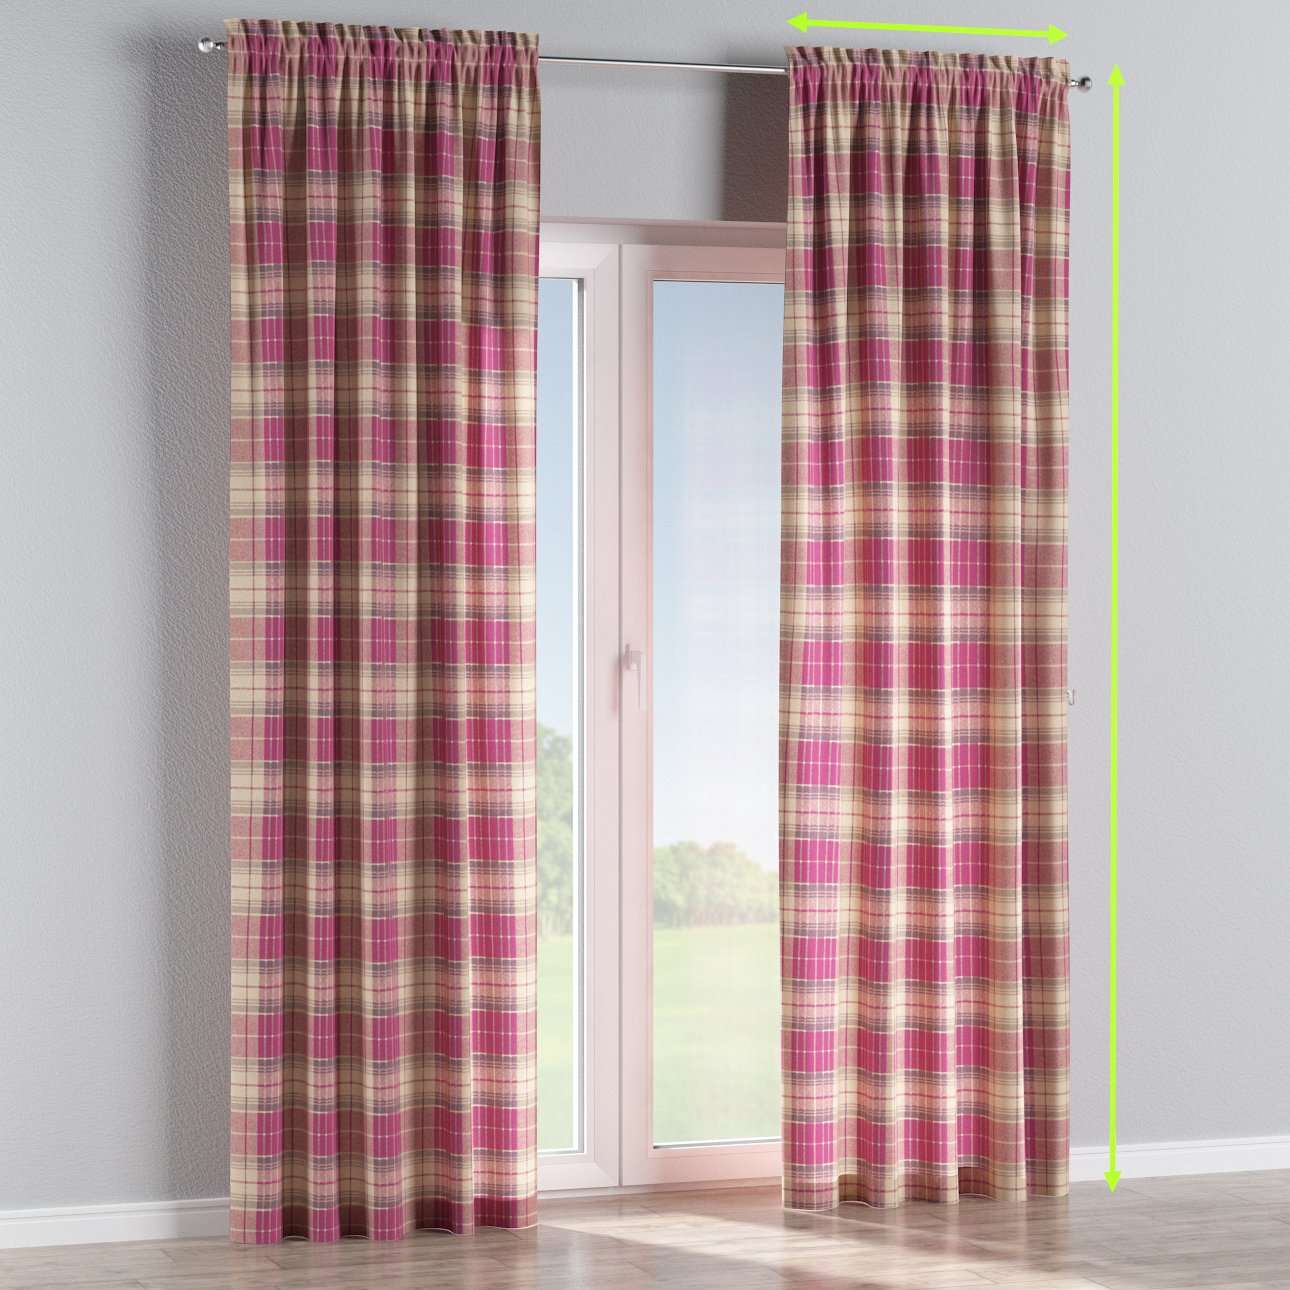 Slot and frill lined curtains in collection Mirella, fabric: 142-07